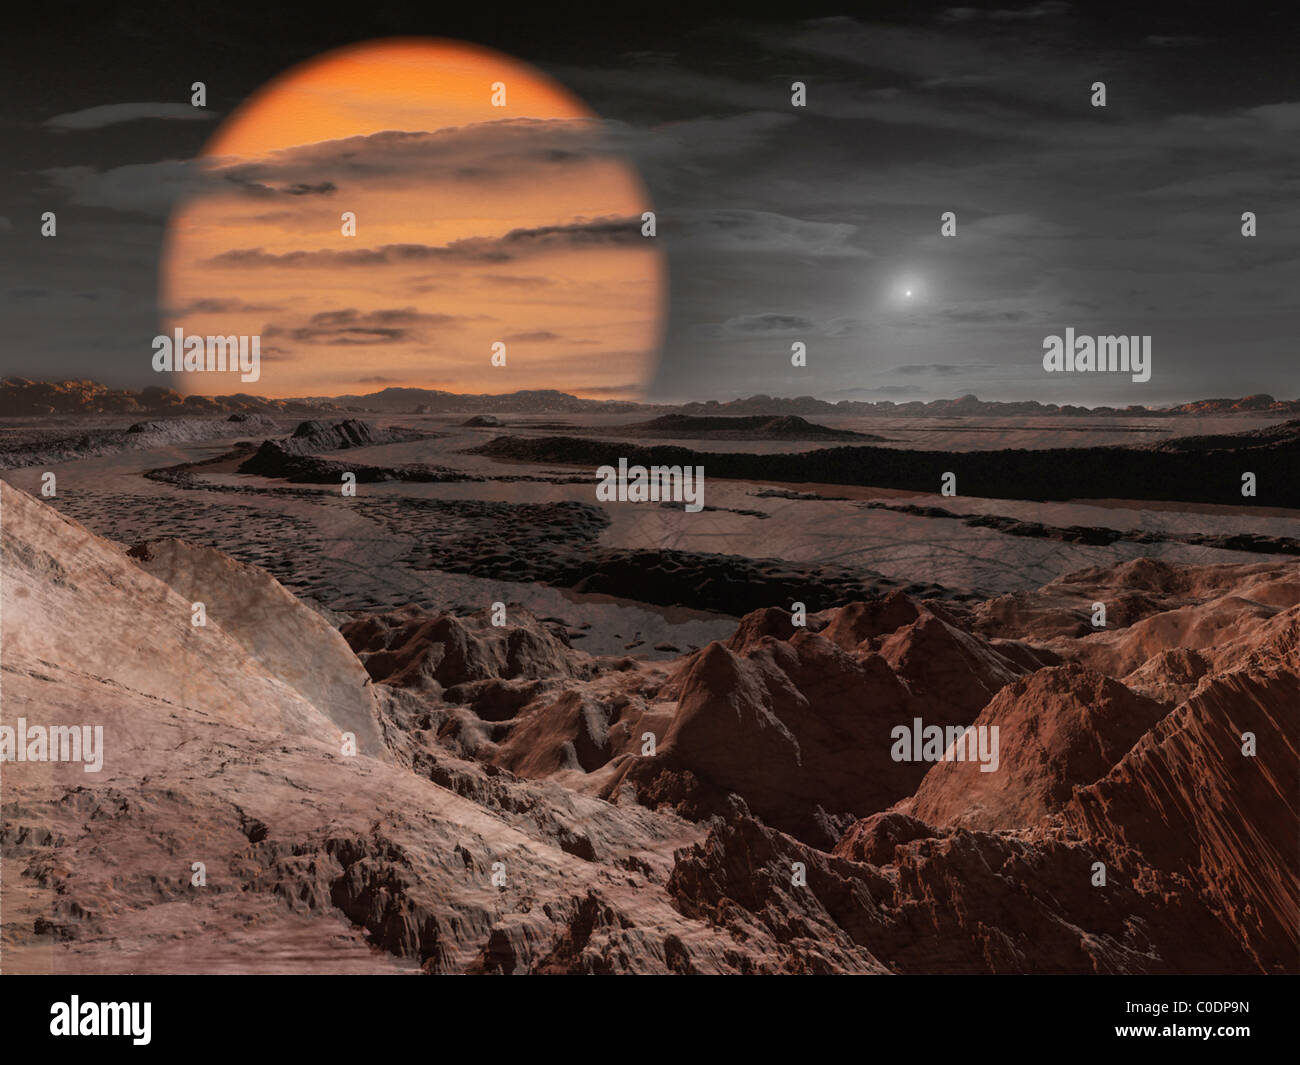 Center Star Bettdecken Degenerate Art Stock Photos Degenerate Art Stock Images Alamy